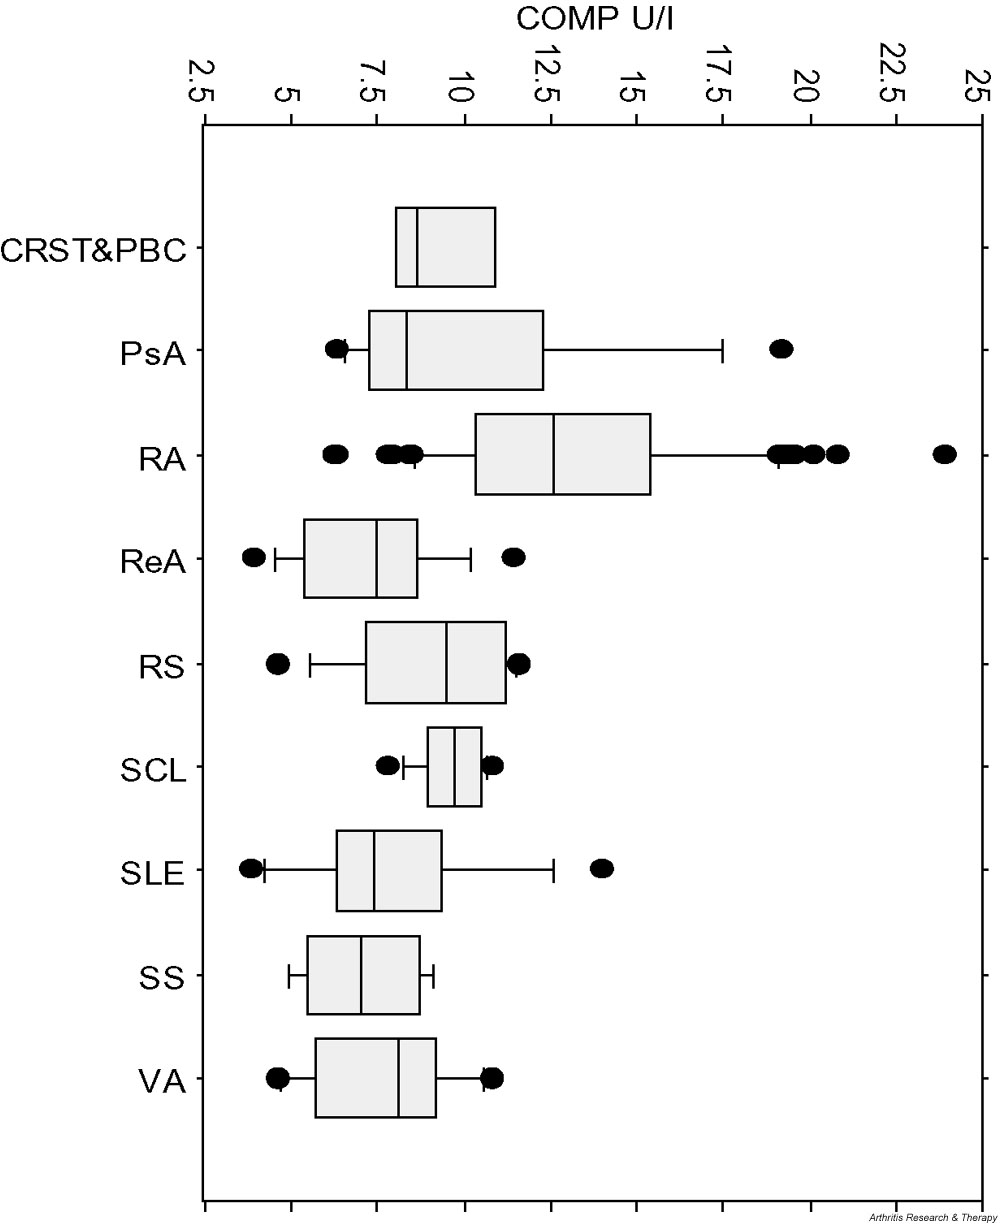 http://static-content.springer.com/image/art%3A10.1186%2Far1161/MediaObjects/13075_2003_Article_1150_Fig1_HTML.jpg